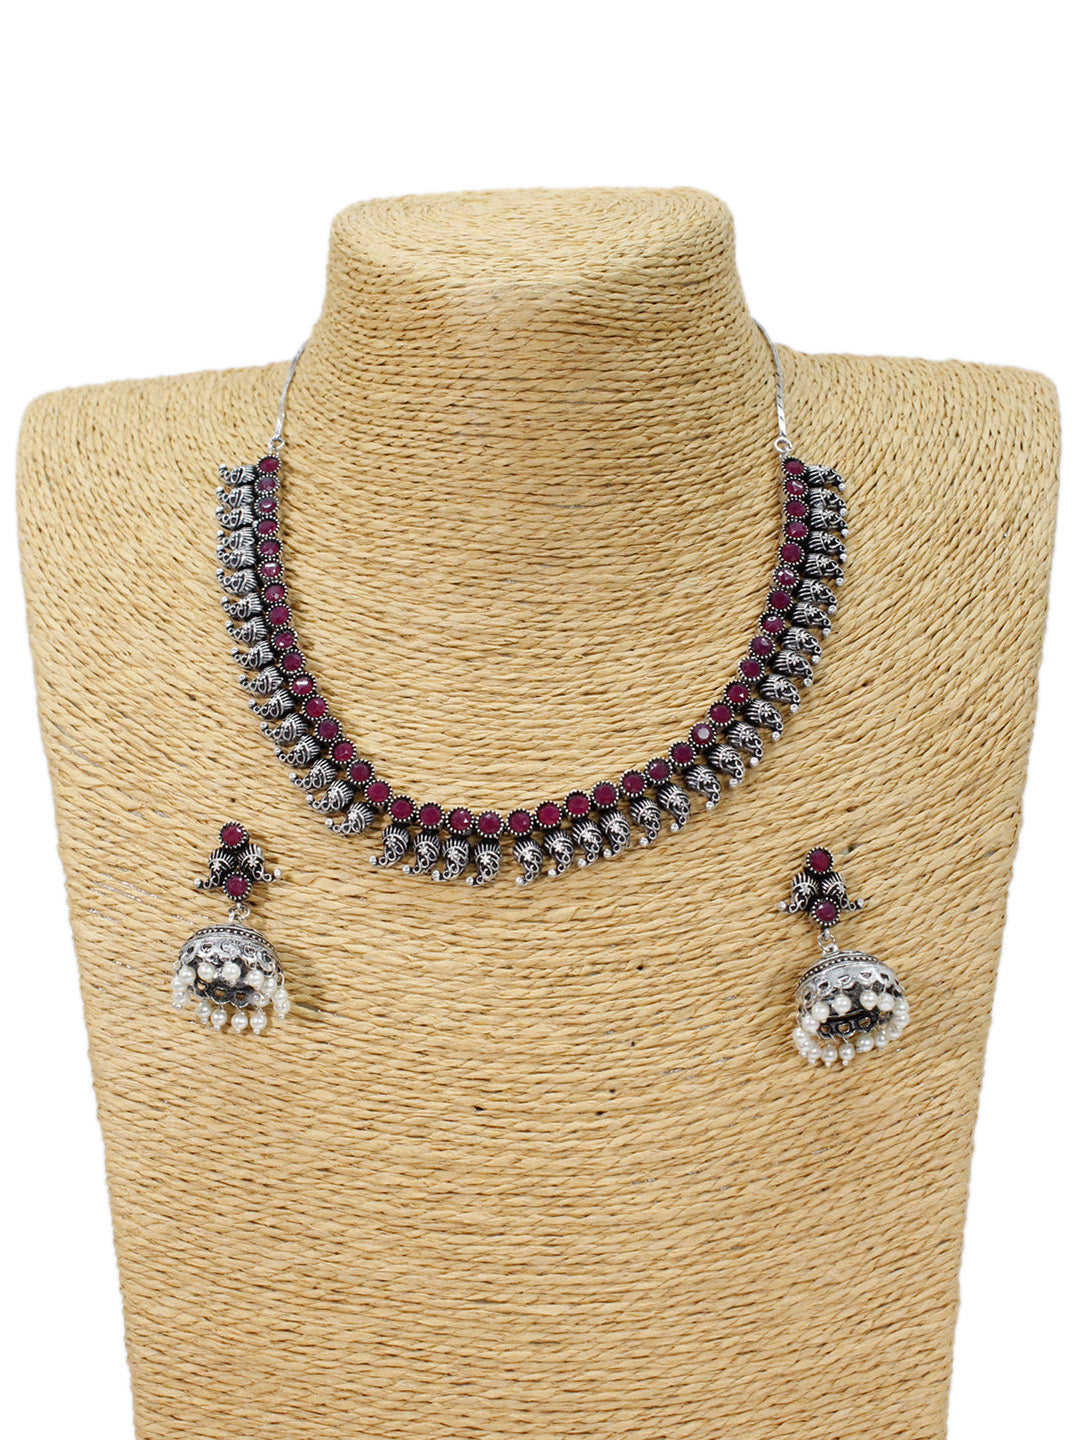 Oxidized Red Color Geometric Design Choker Necklace Set-OXIDIZED1-Necklace Set